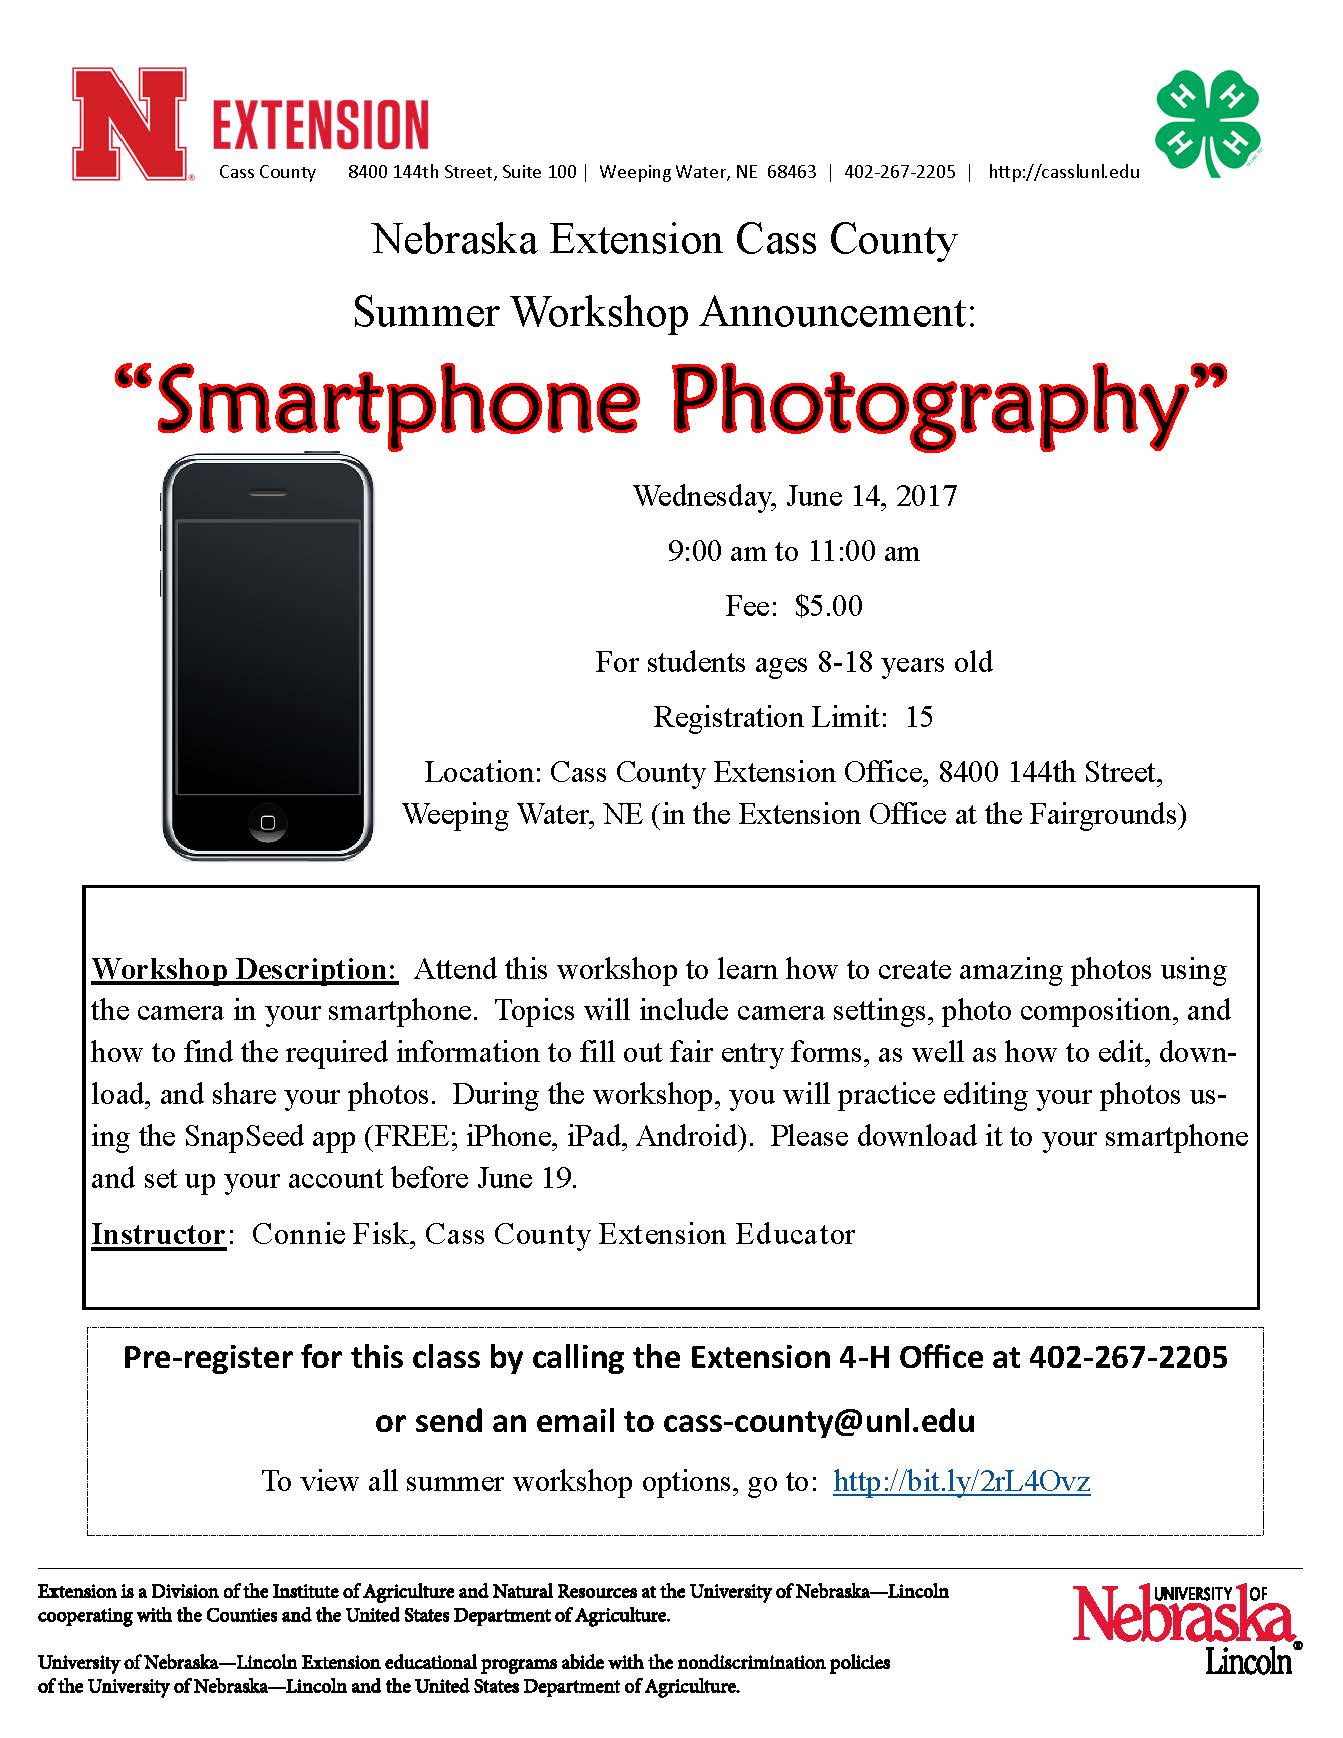 7 Smarthone Photography flyer